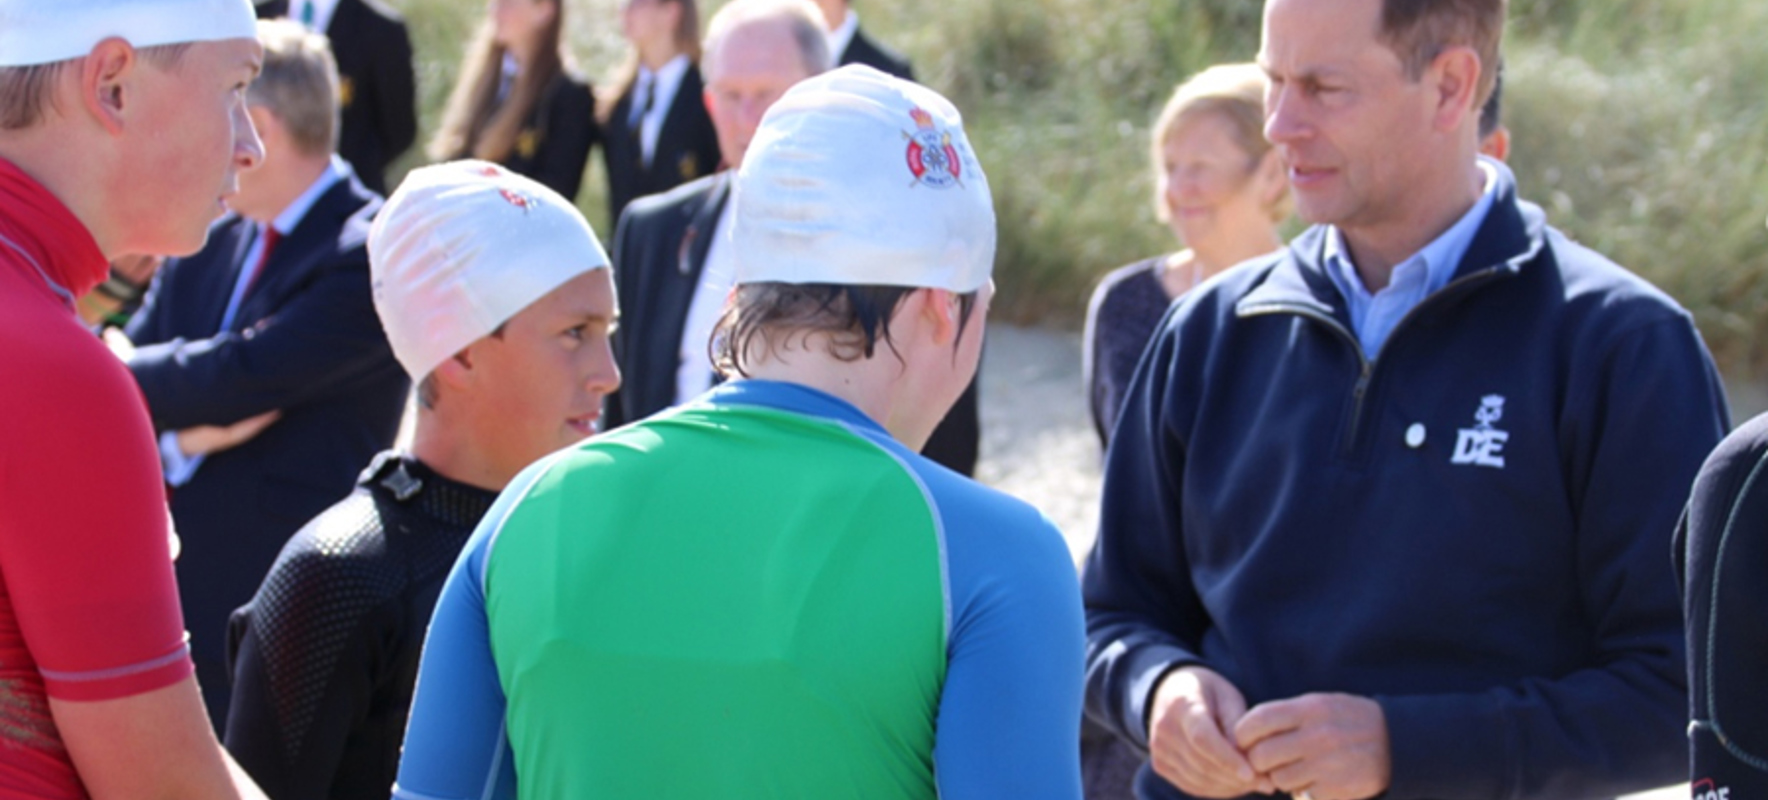 Lifesaving Display for Prince Edward on Duke of Edinburgh Tour